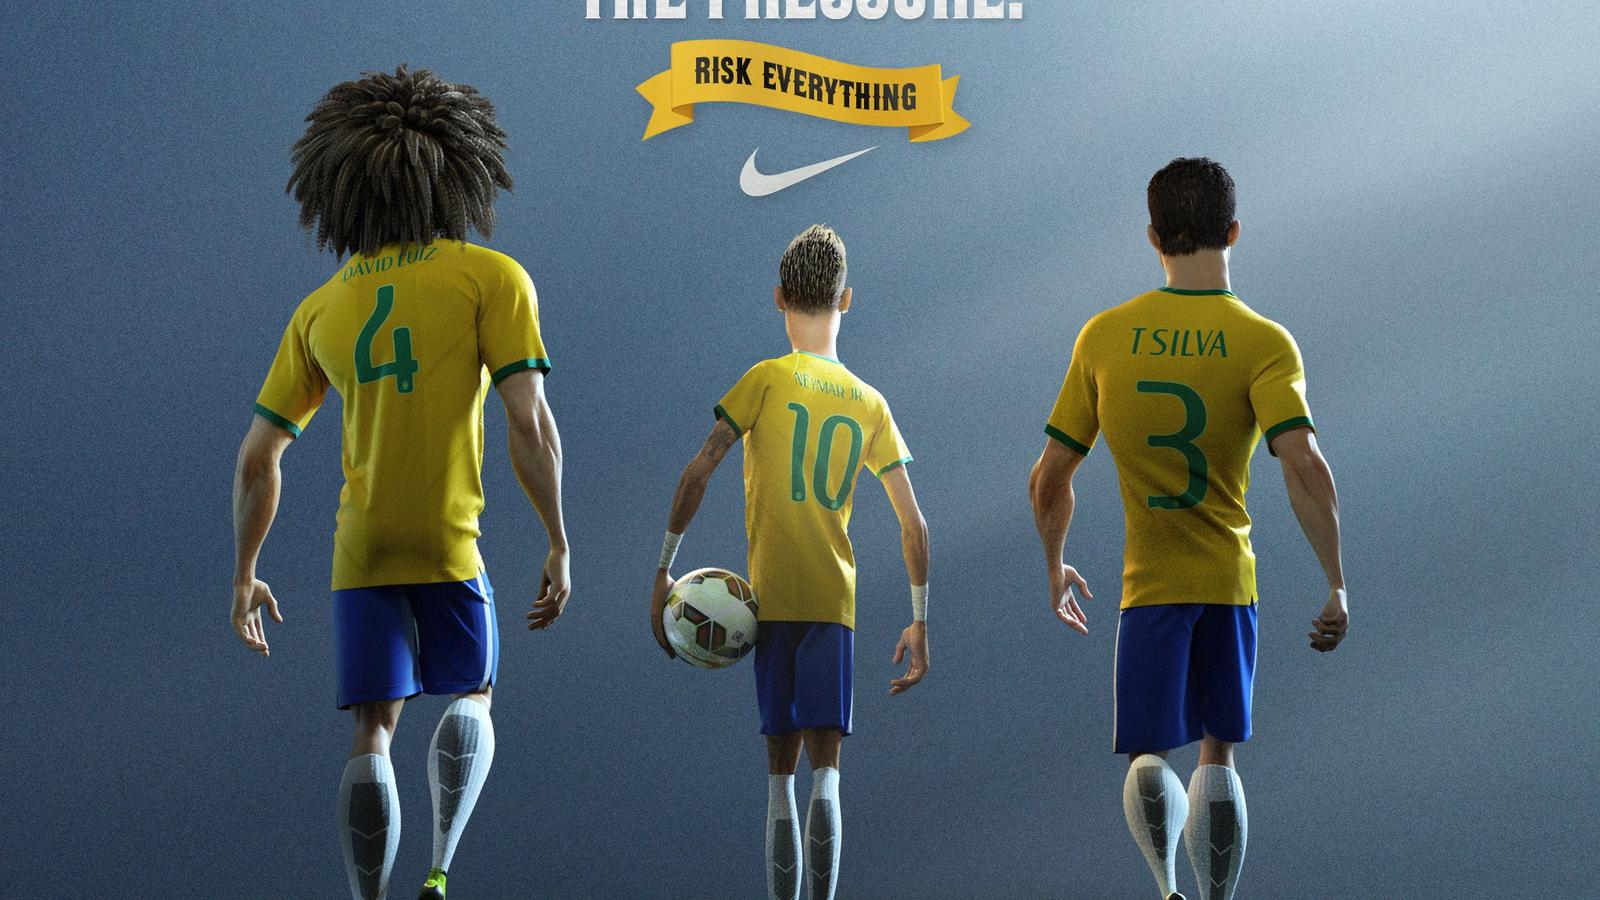 Nike News - Nike Football Extends The Last Game film with Animated Zlatan and Other Players.